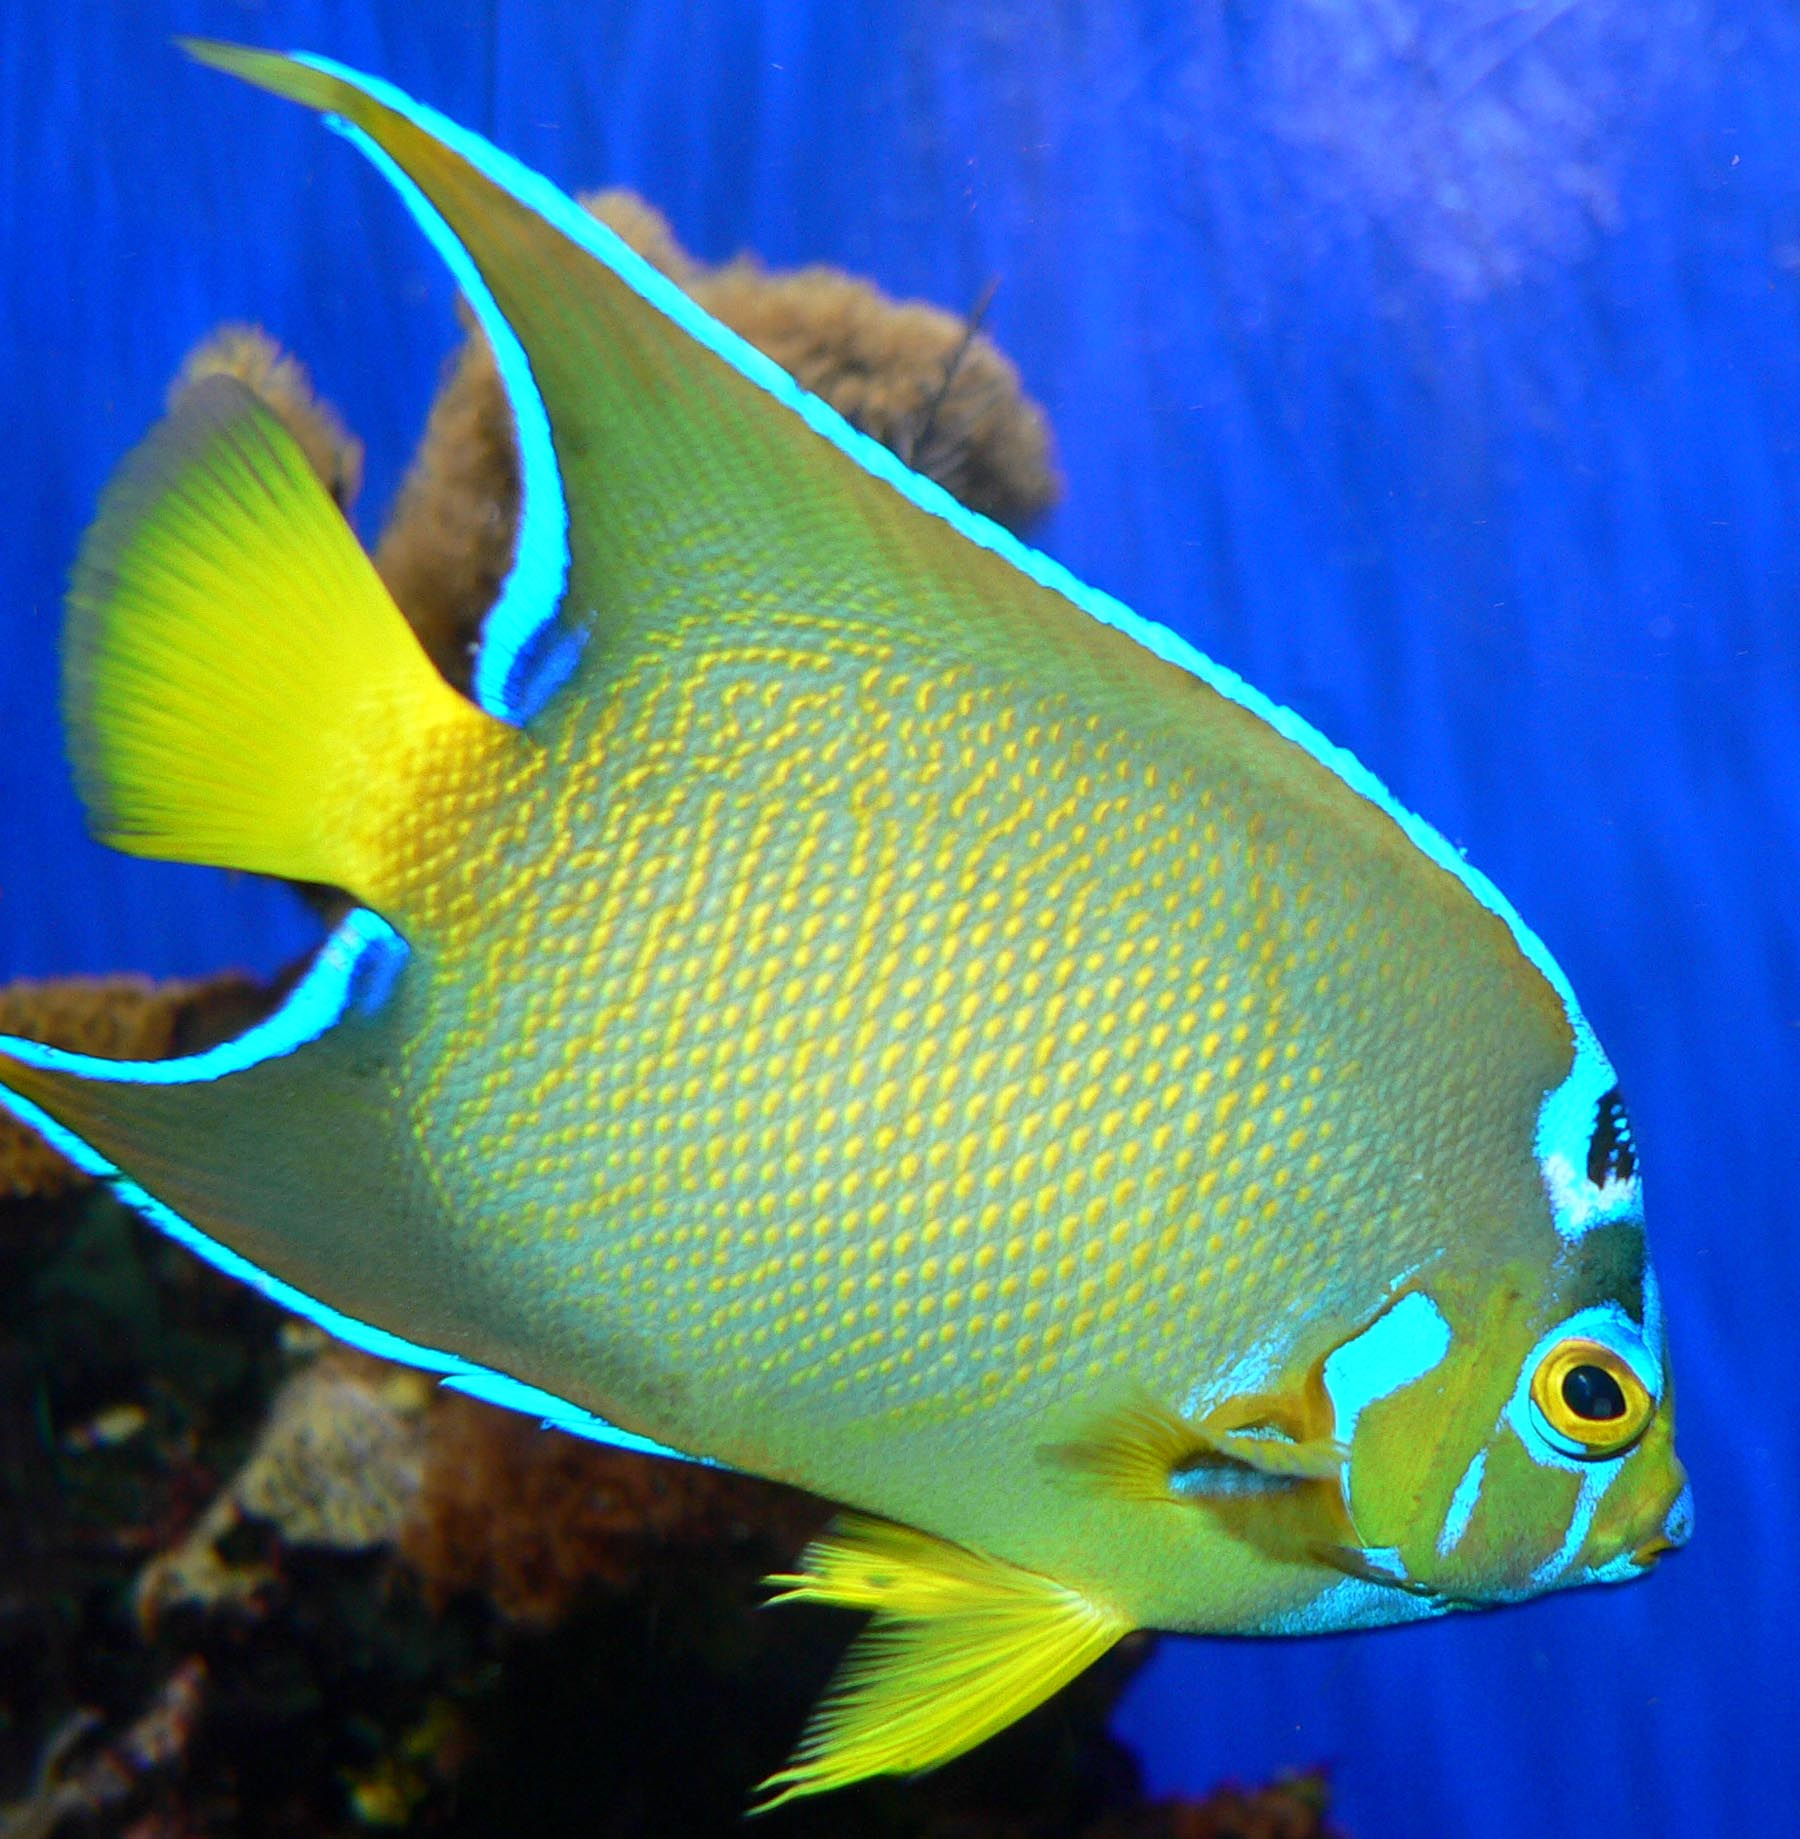 List of marine aquarium fish species - Wikipedia